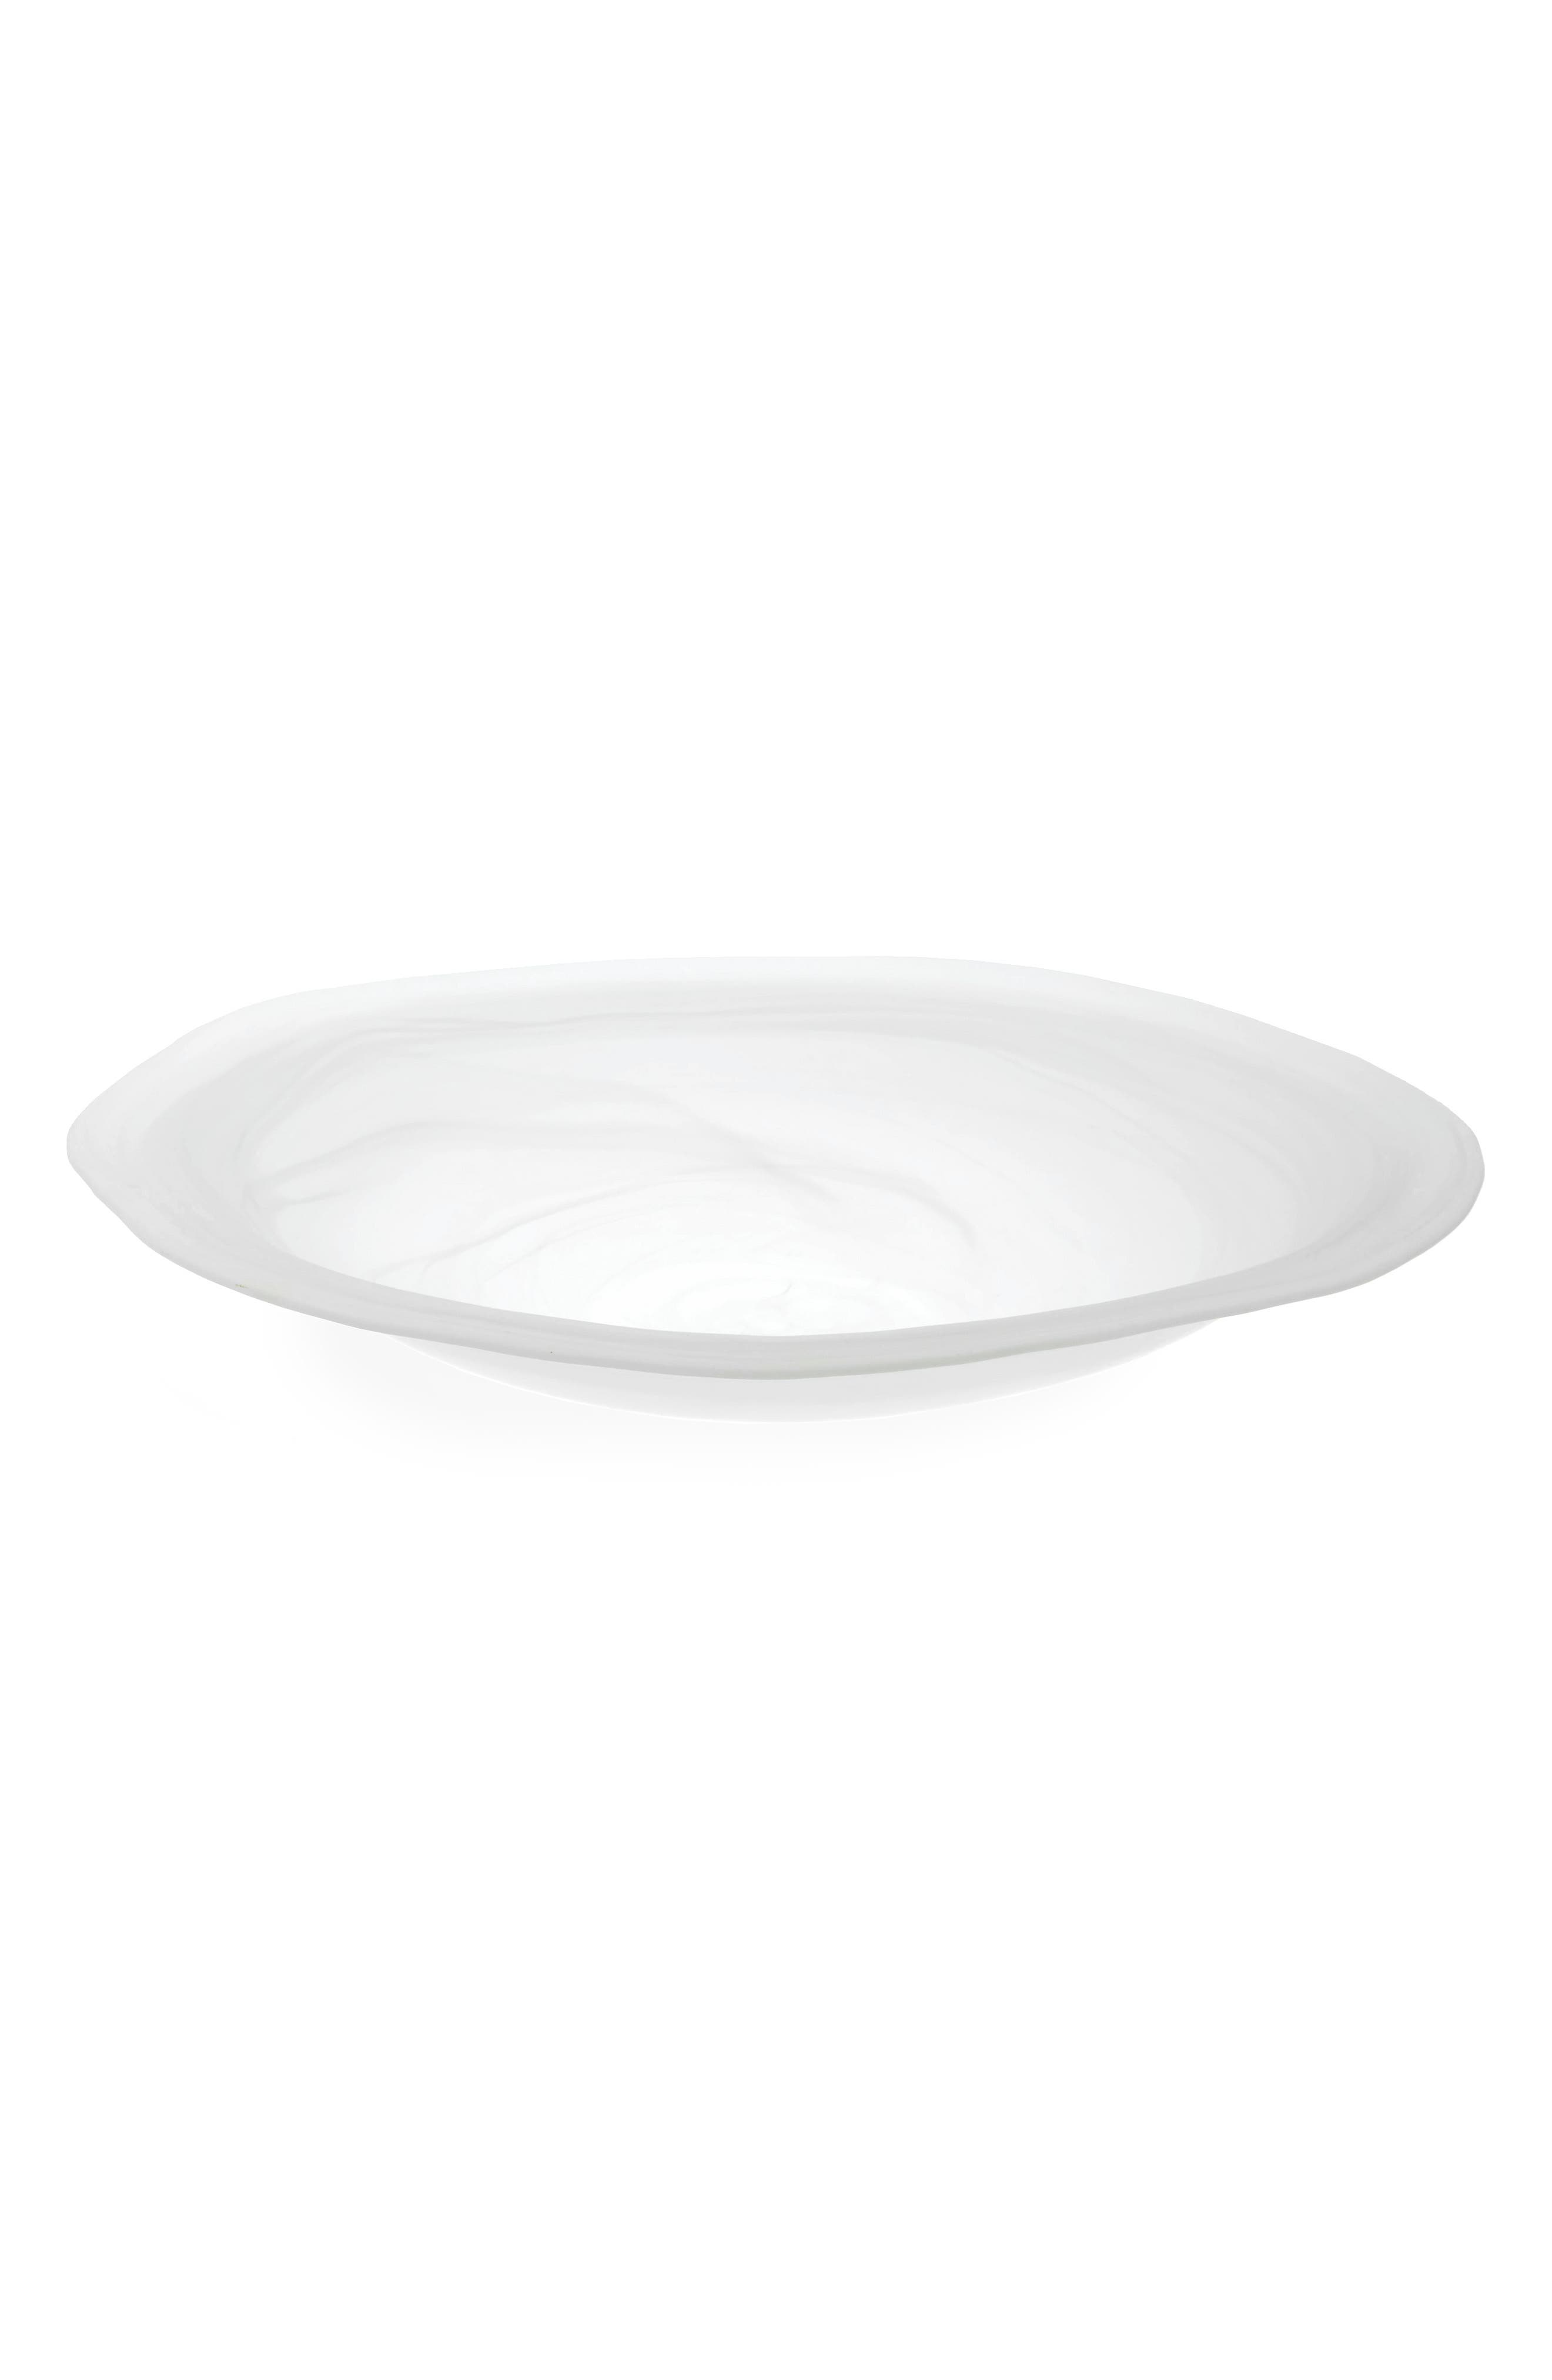 Frosted Alabaster Glass Platter,                         Main,                         color, White